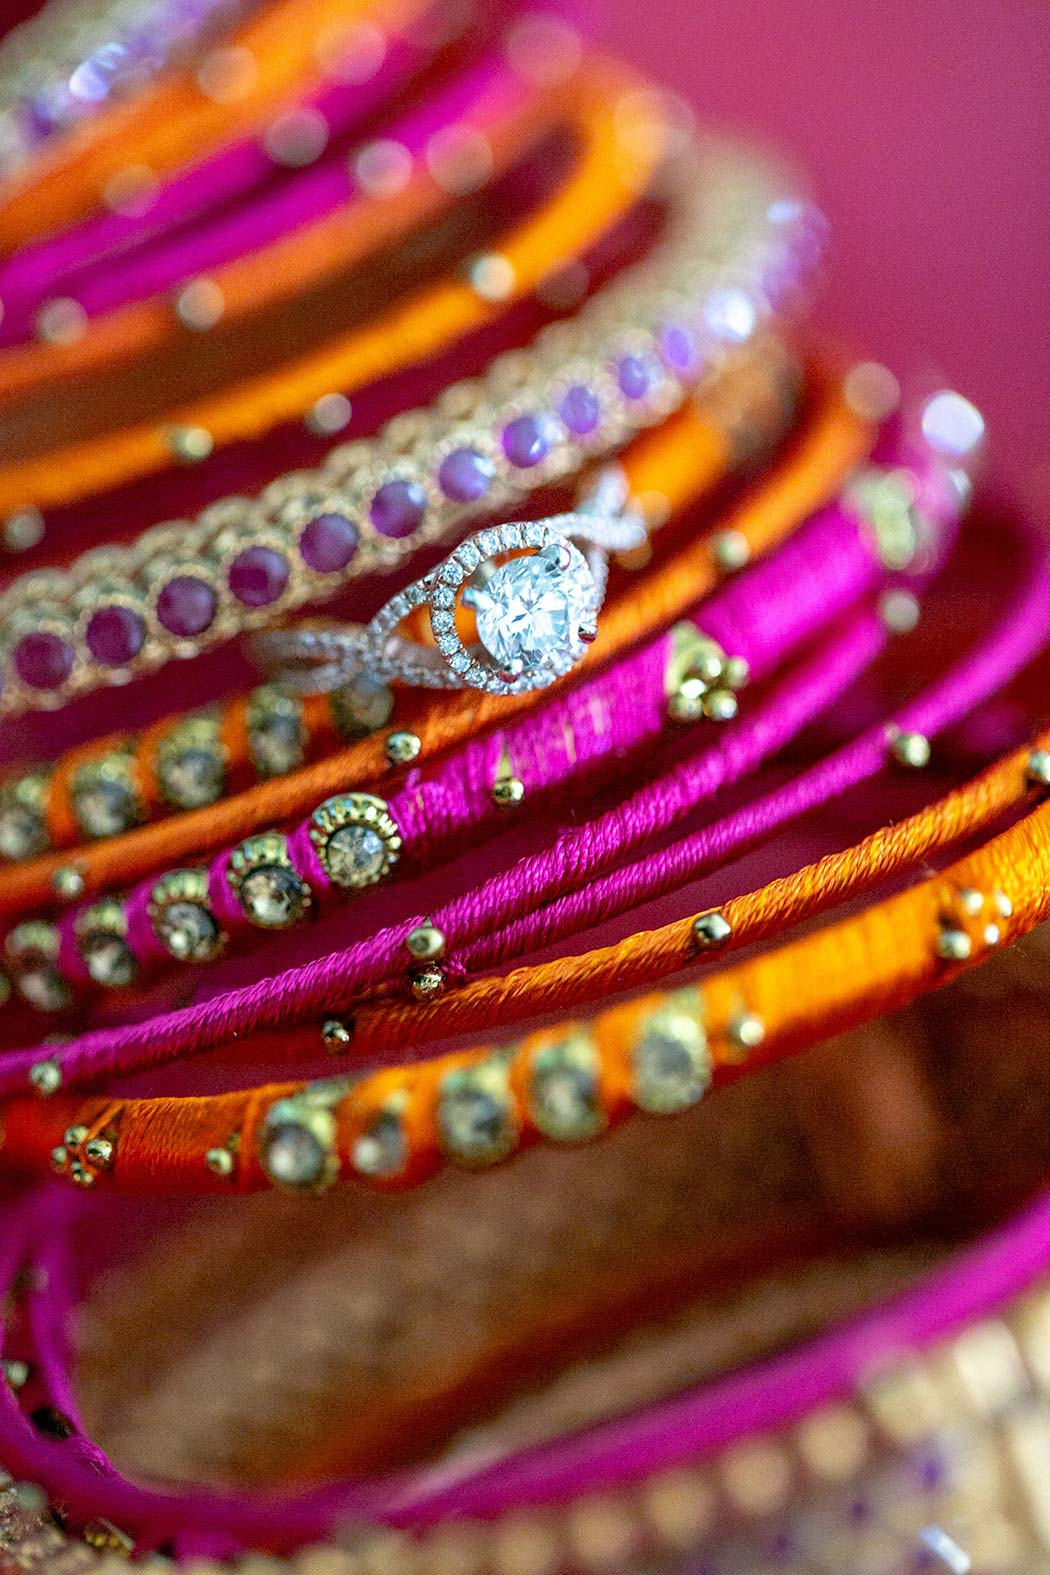 round diamond ring photographed on indian wedding bangles | wedding detail photography